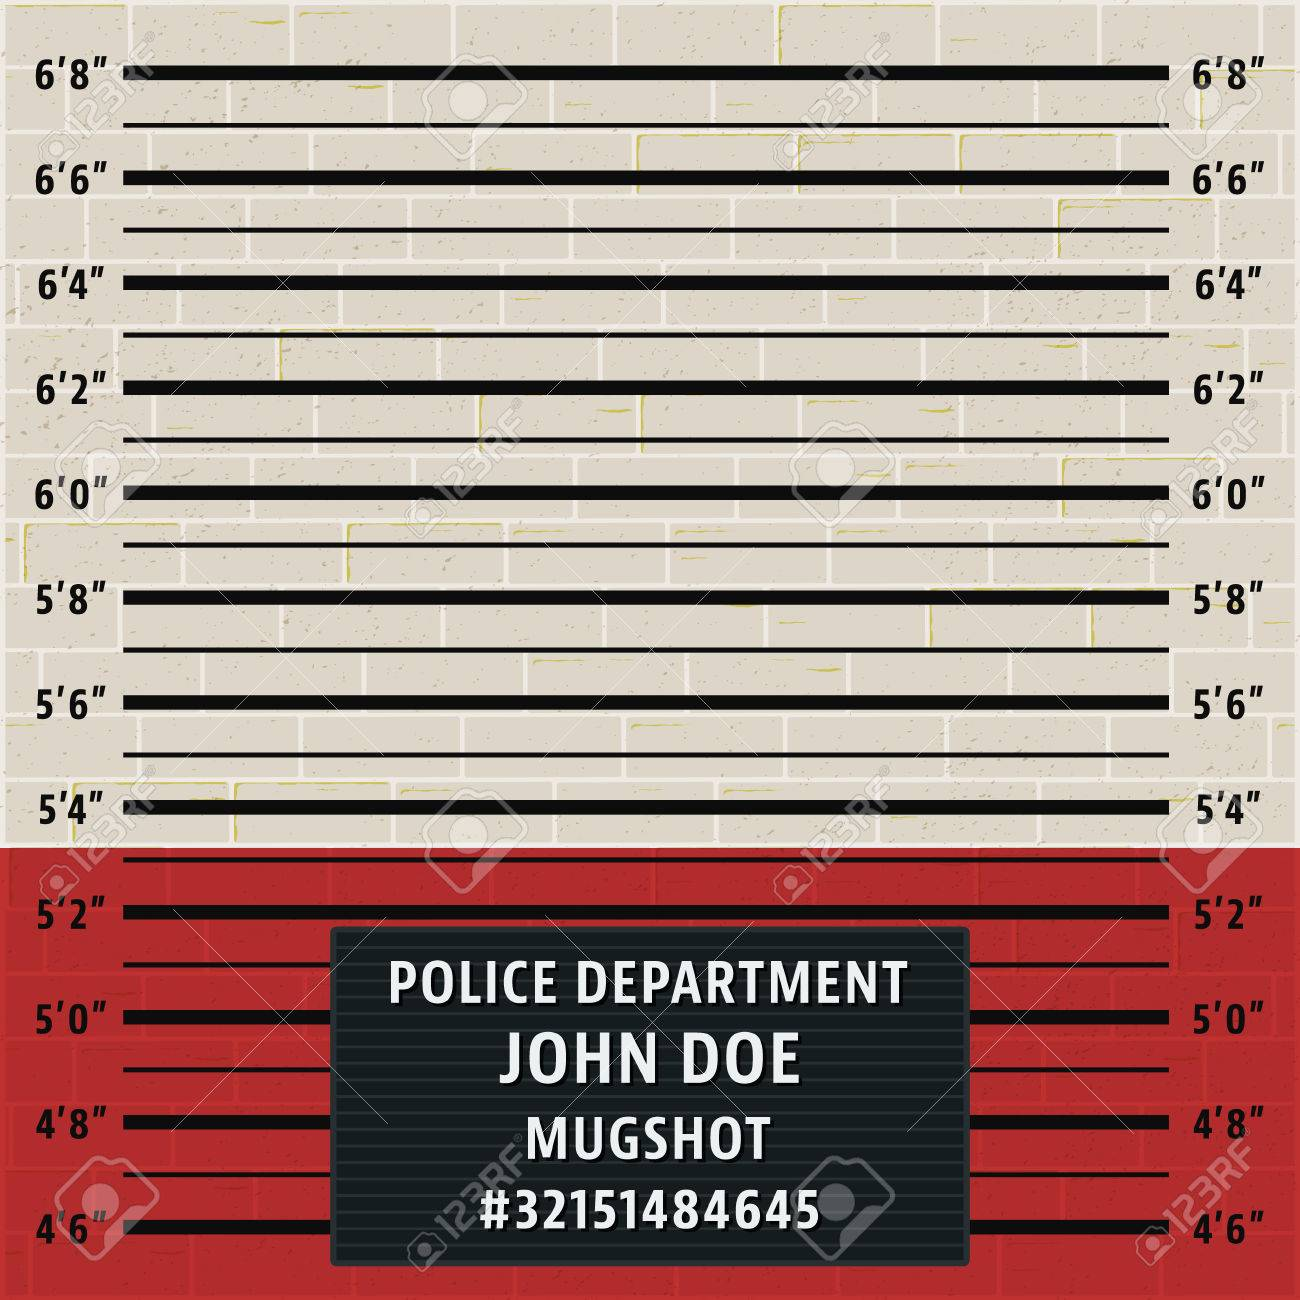 Police Mugshot Template Royalty Free Cliparts, Vectors, And Stock ...